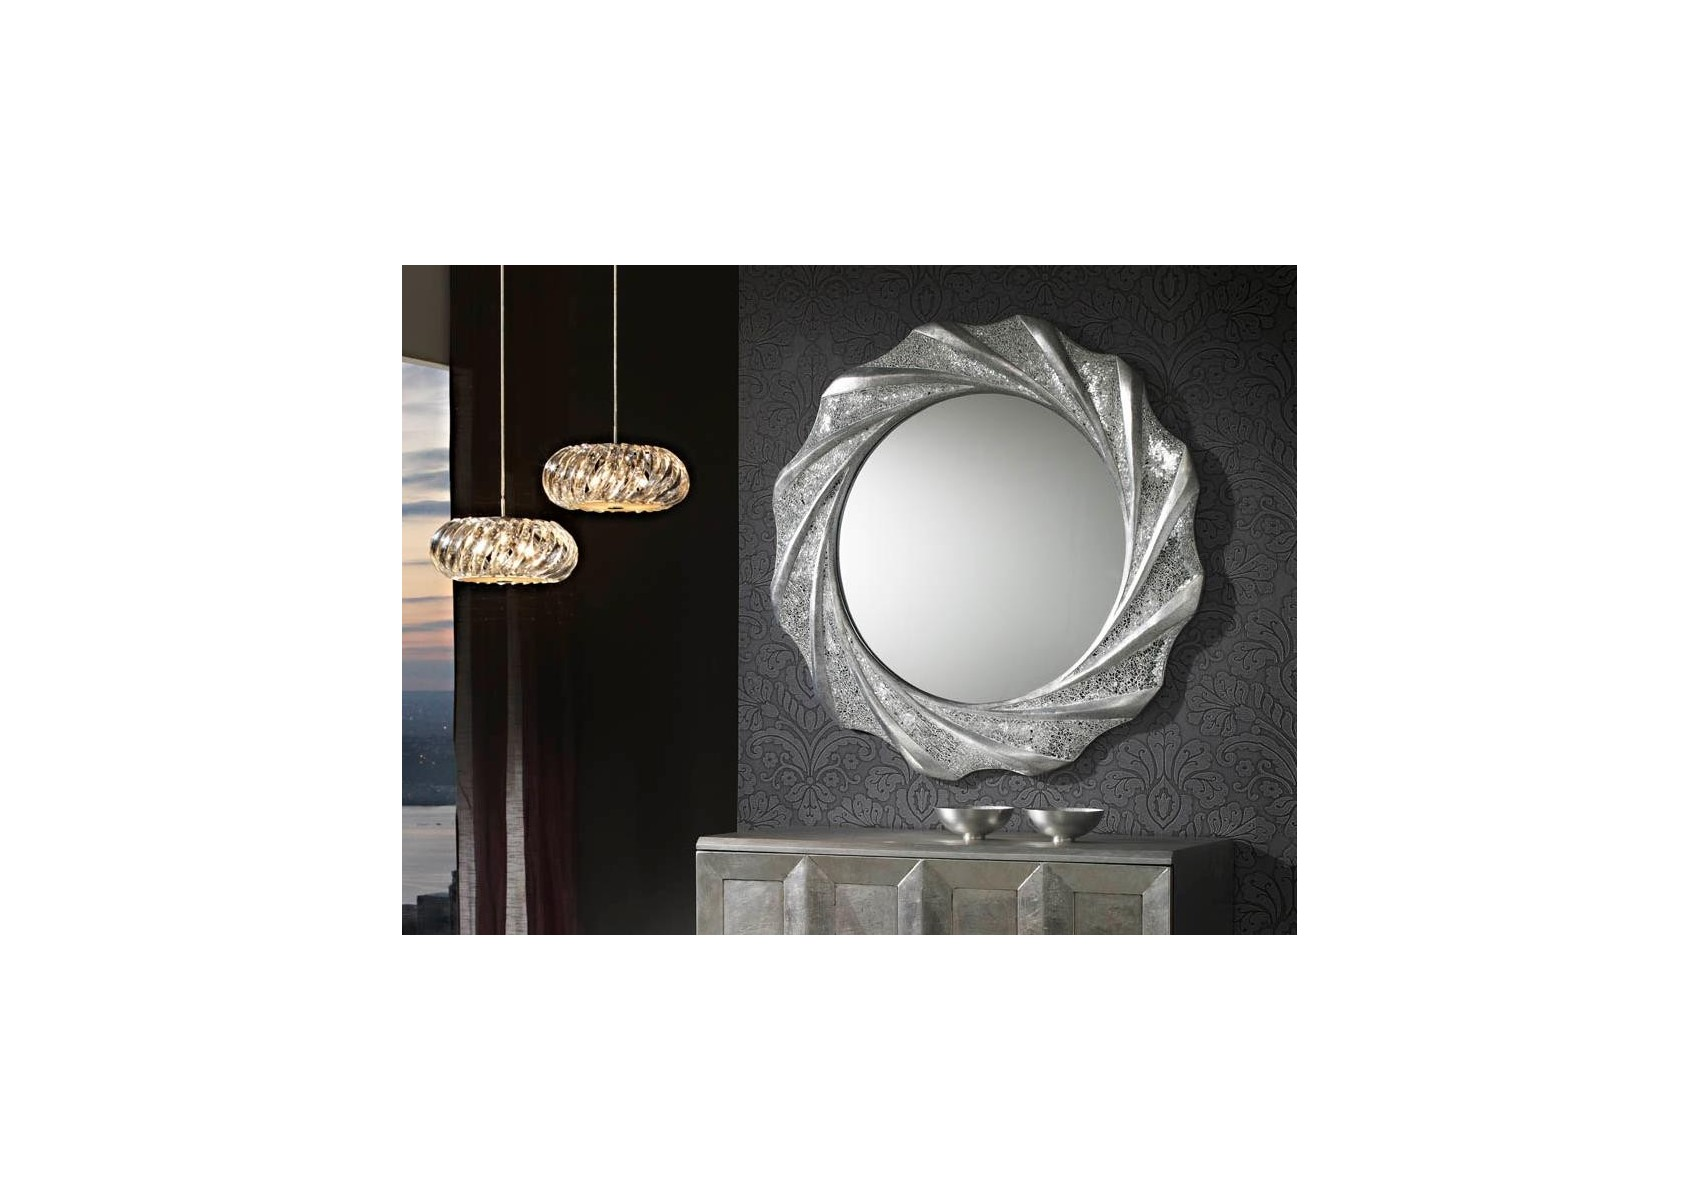 Miroir rond collection gaudi design deco schuller for Collection miroir